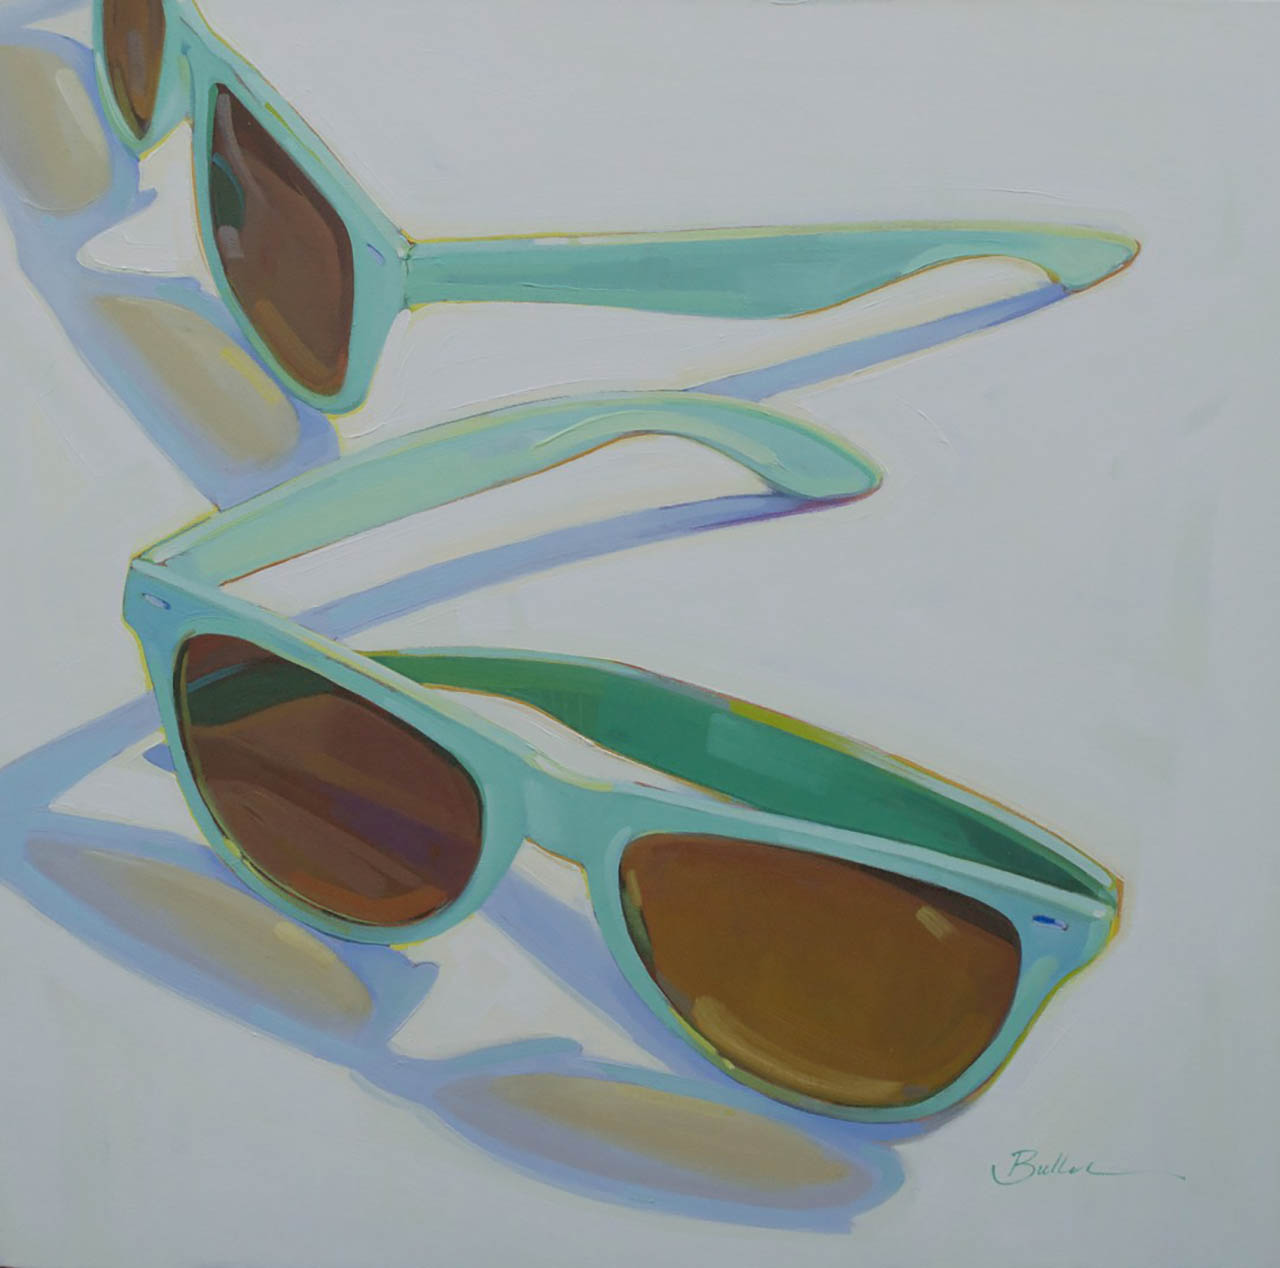 Sweet Shades, by Samantha Buller